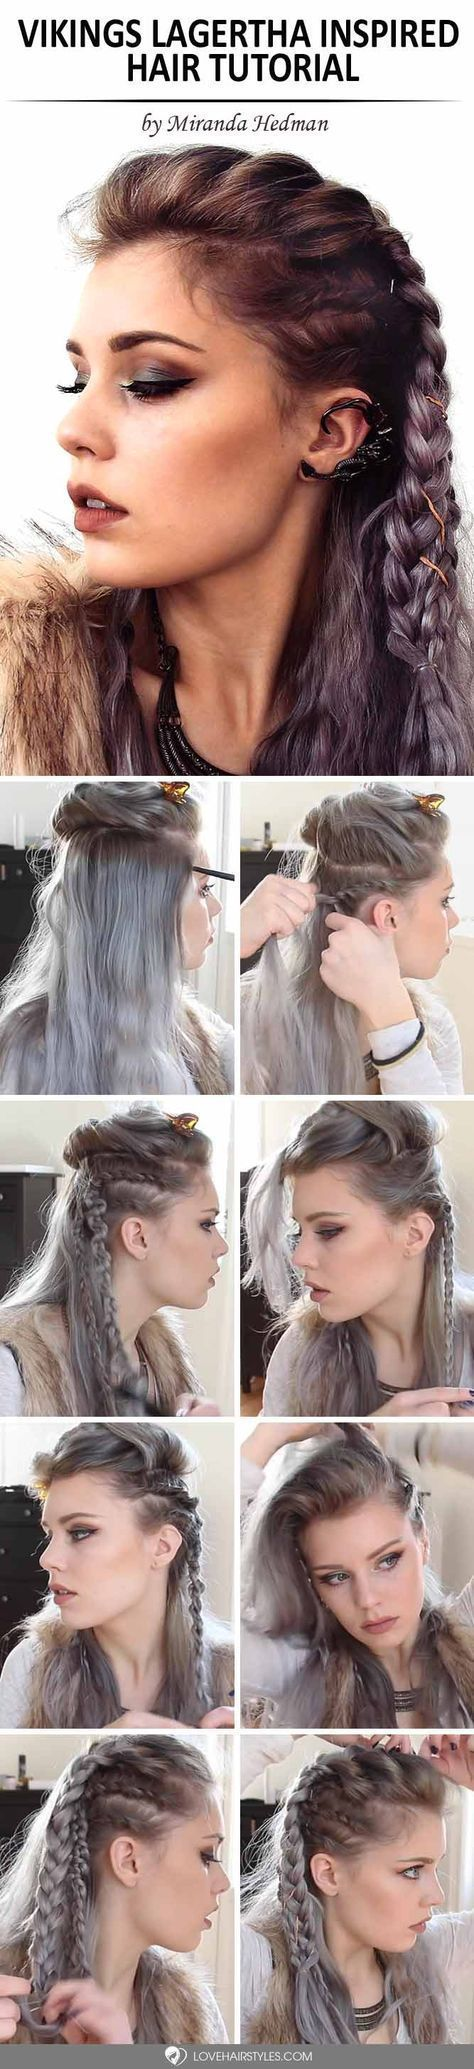 Wikinger Lagertha Inspired Hair Tutorial ★ Mehr sehen: lovehairstyles.co